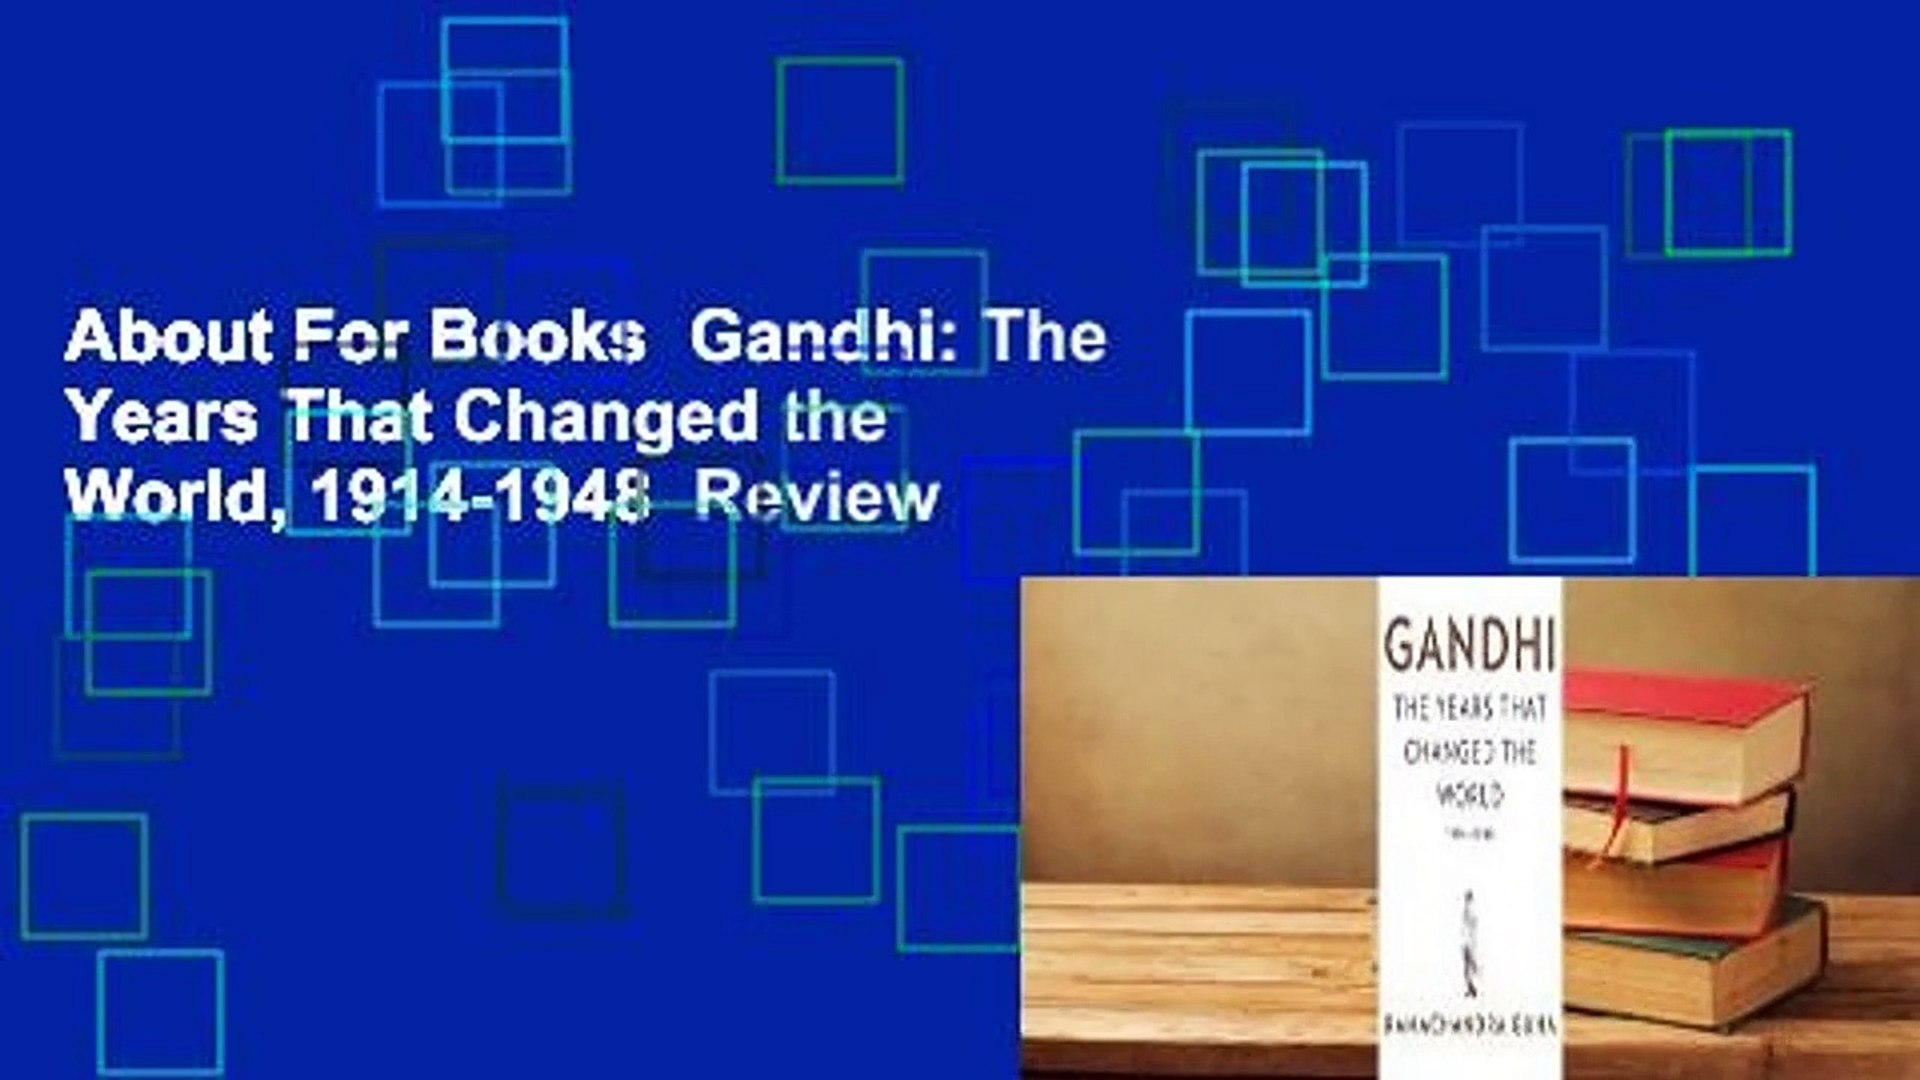 About For Books  Gandhi: The Years That Changed the World, 1914-1948  Review